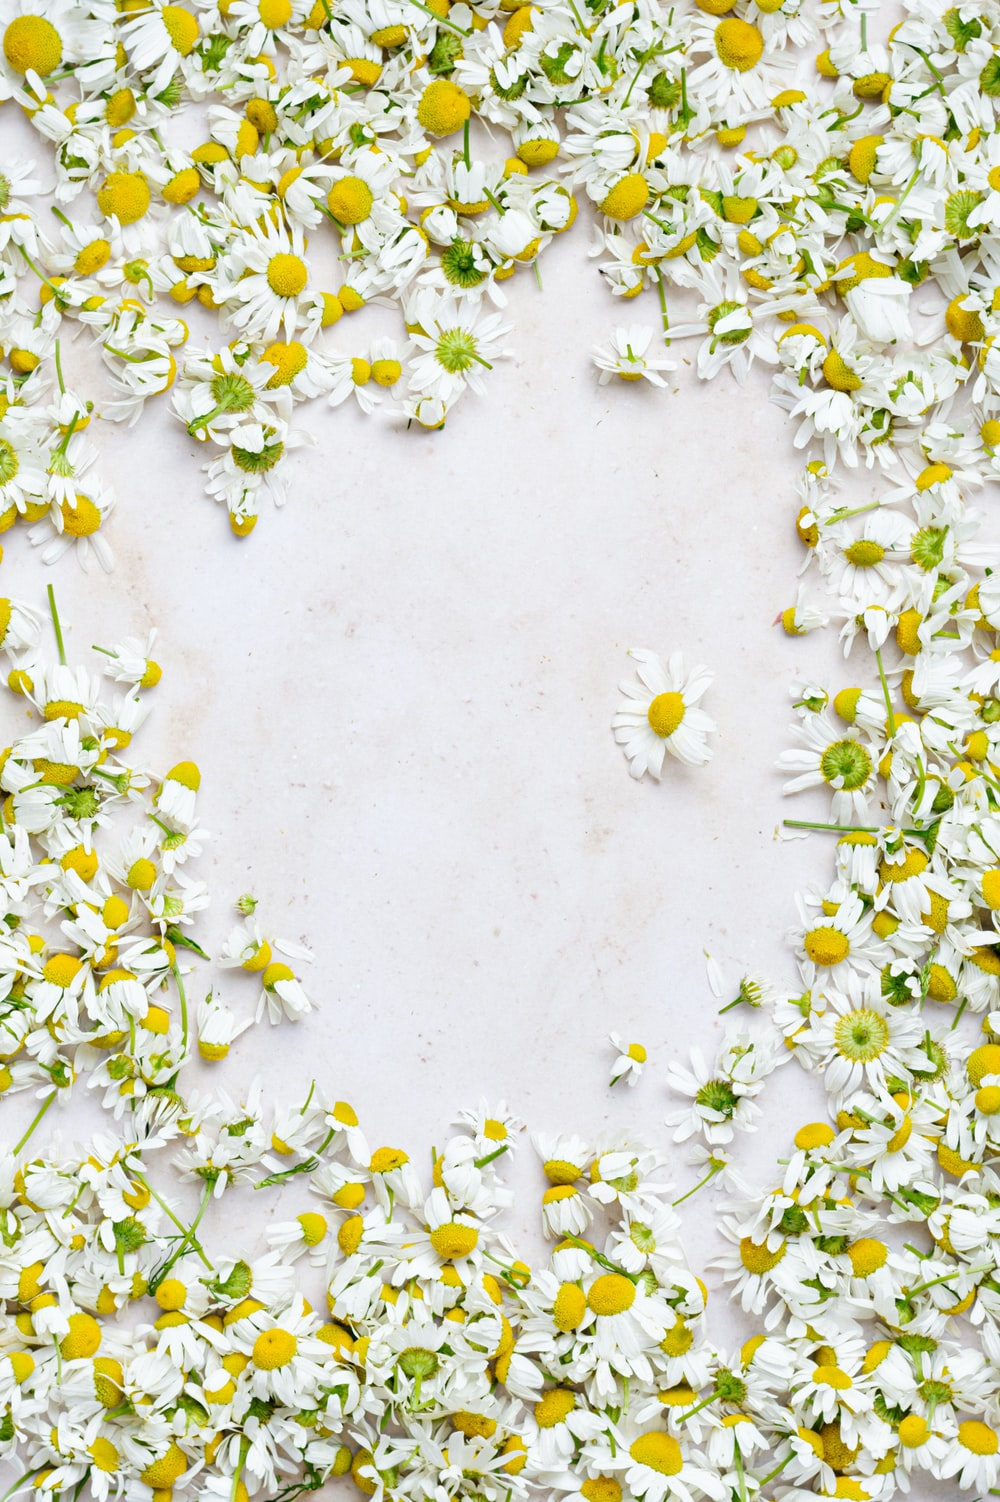 white and yellow flowers during daytime